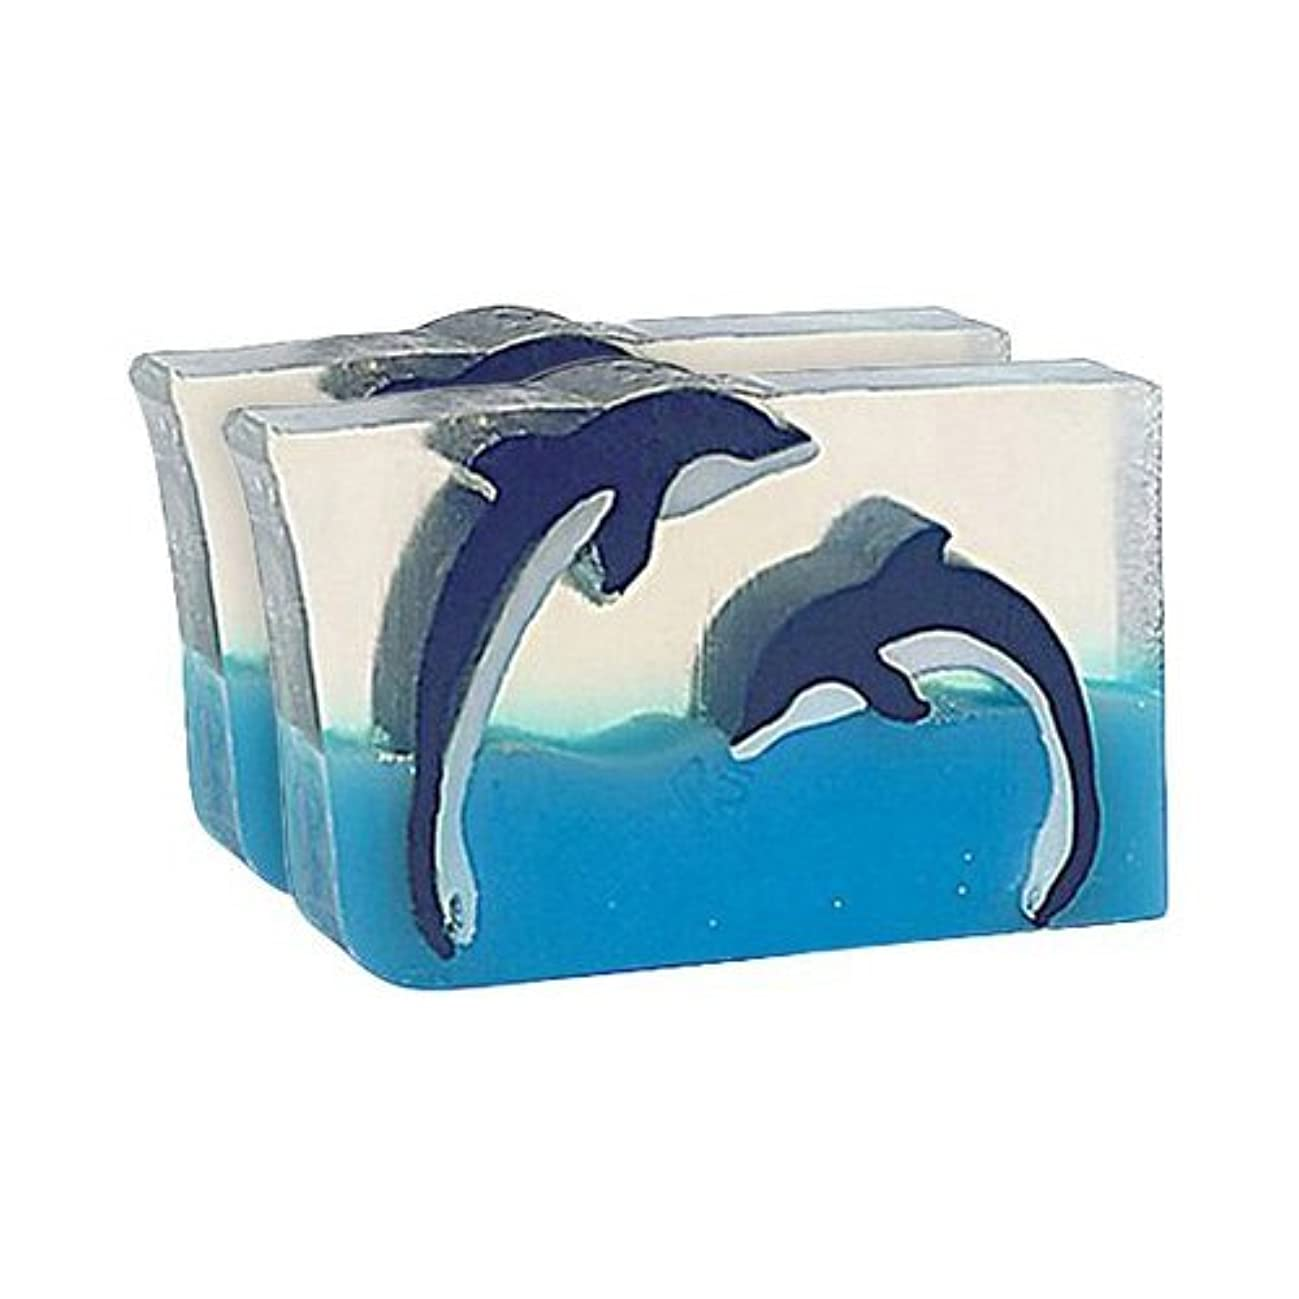 約束する大惨事植物学Primal Elements SWDD Dueling Dolphins 5.8 oz. Bar Soap in Shrinkwrap